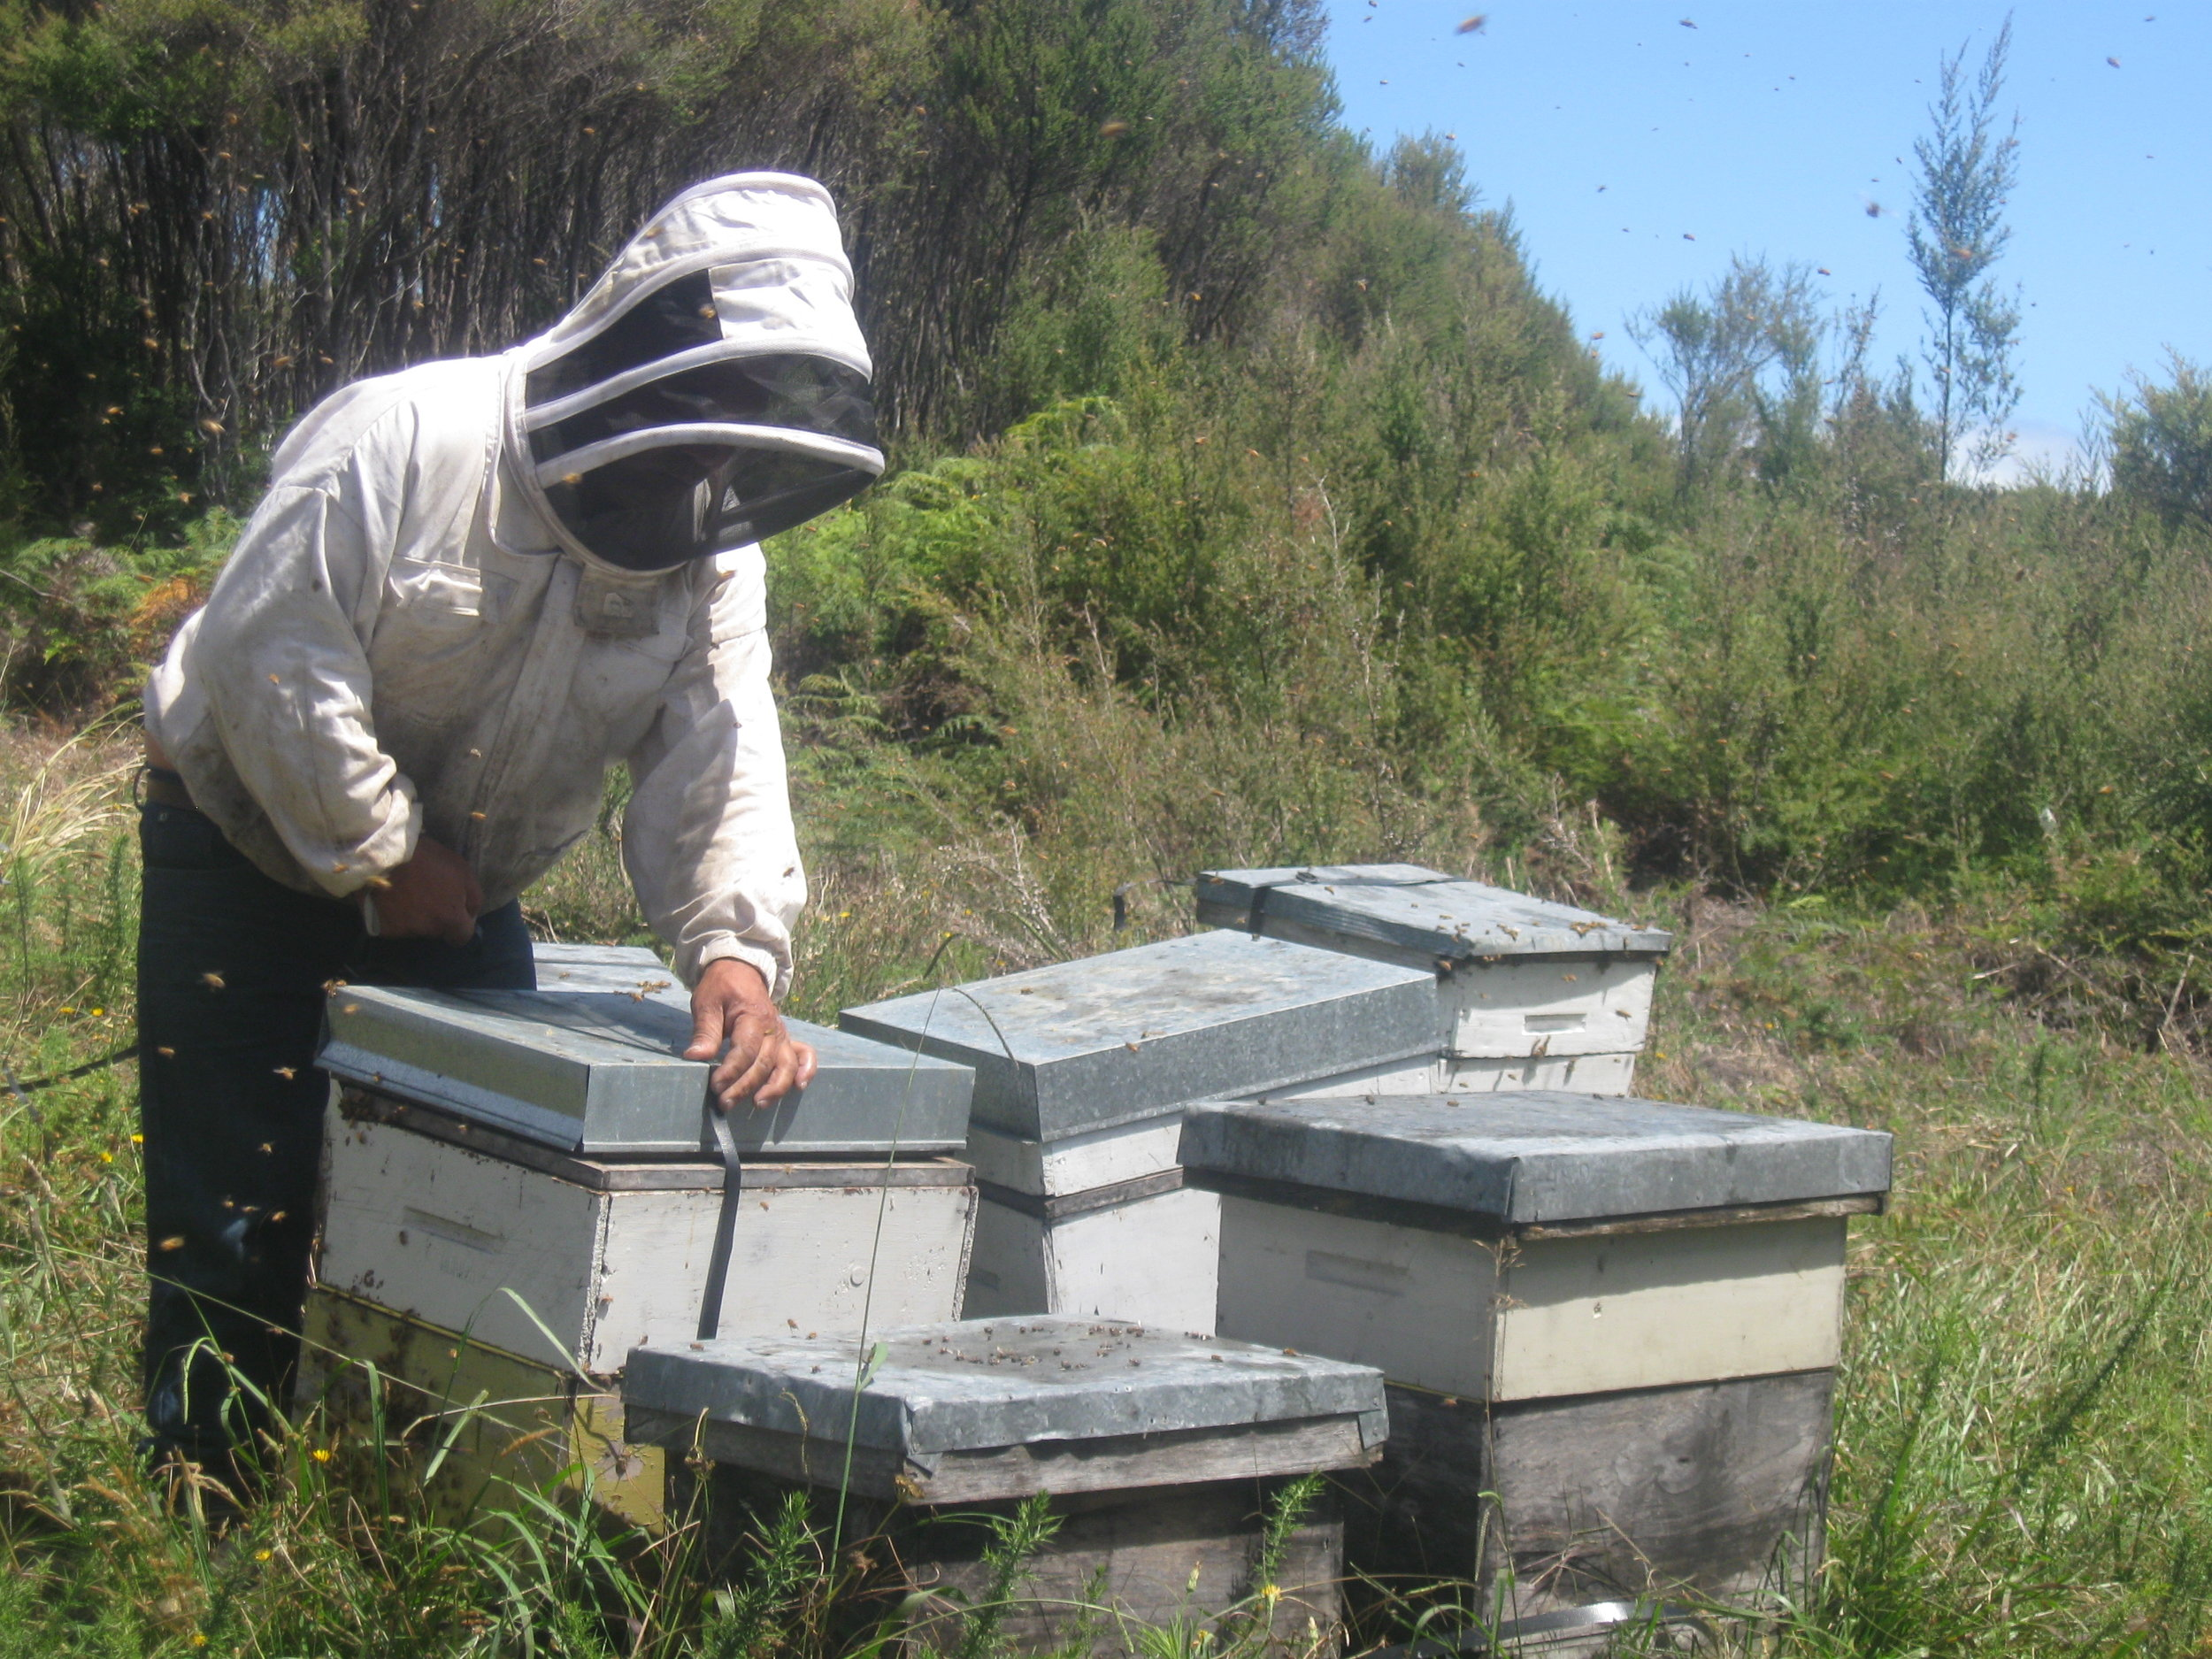 Strapping up a hive after checking